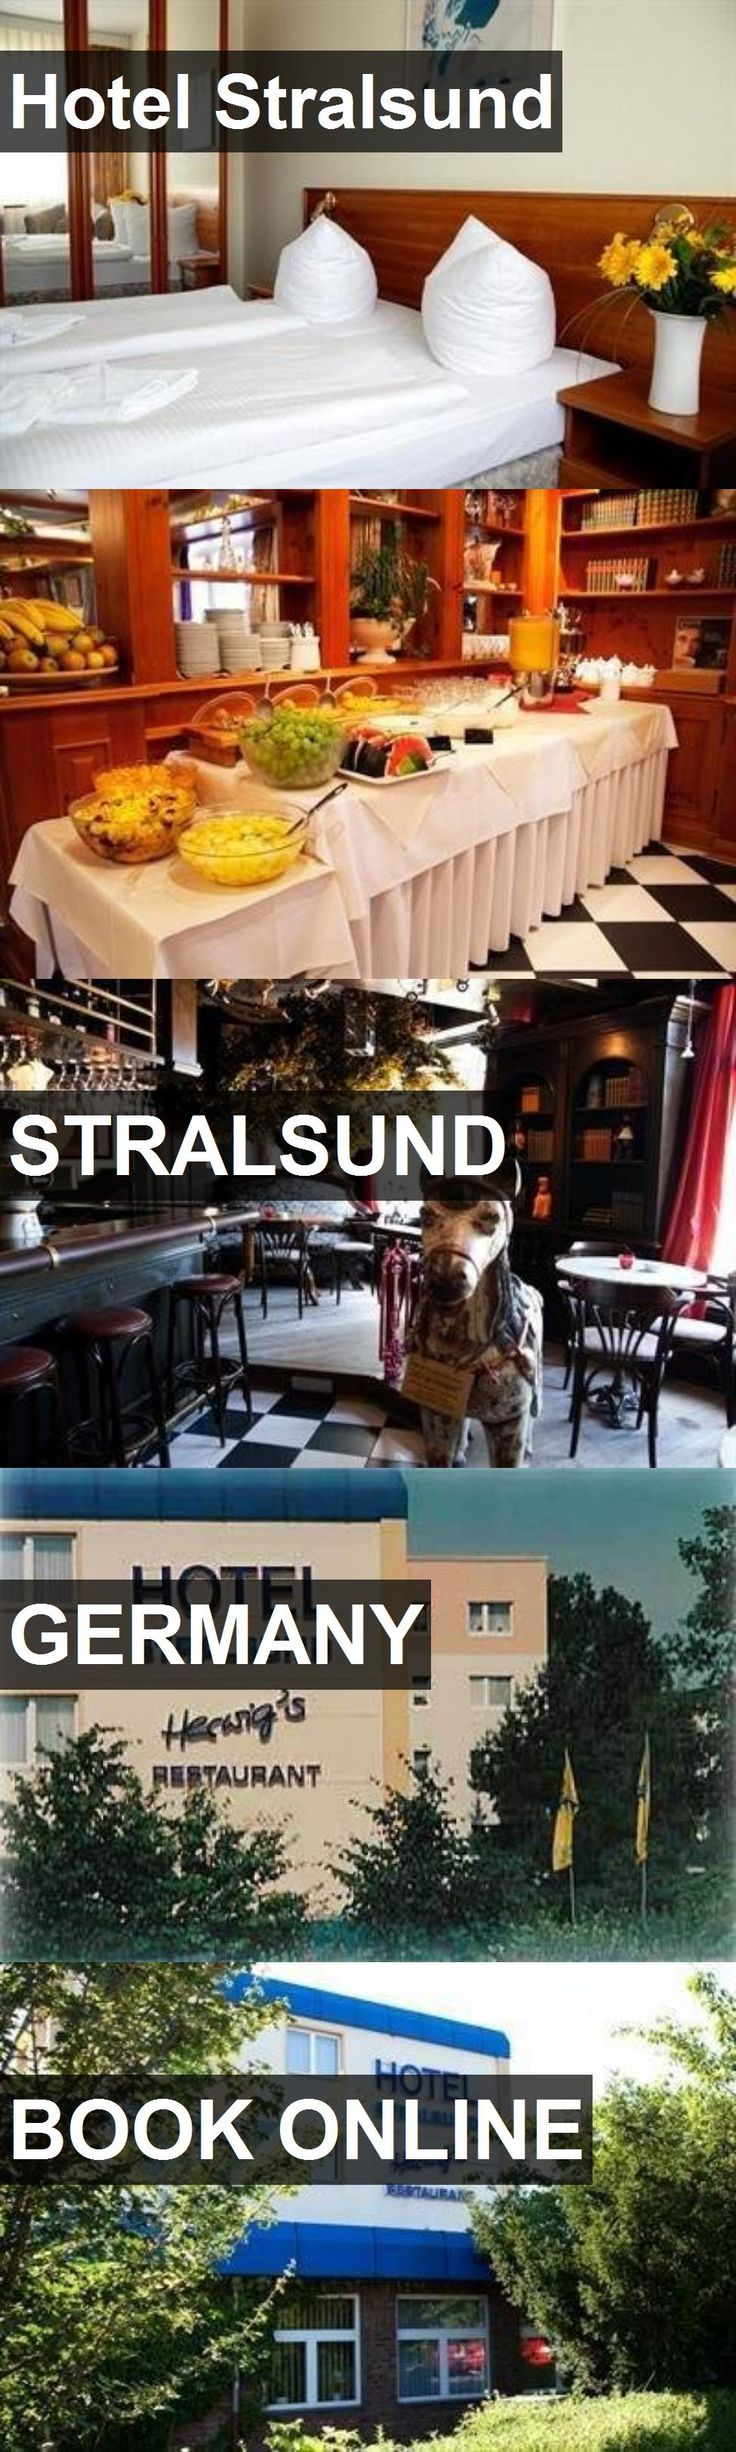 Hotel Hotel Stralsund in Stralsund, Germany. For more information, photos, reviews and best prices please follow the link. #Germany #Stralsund #HotelStralsund #hotel #travel #vacation